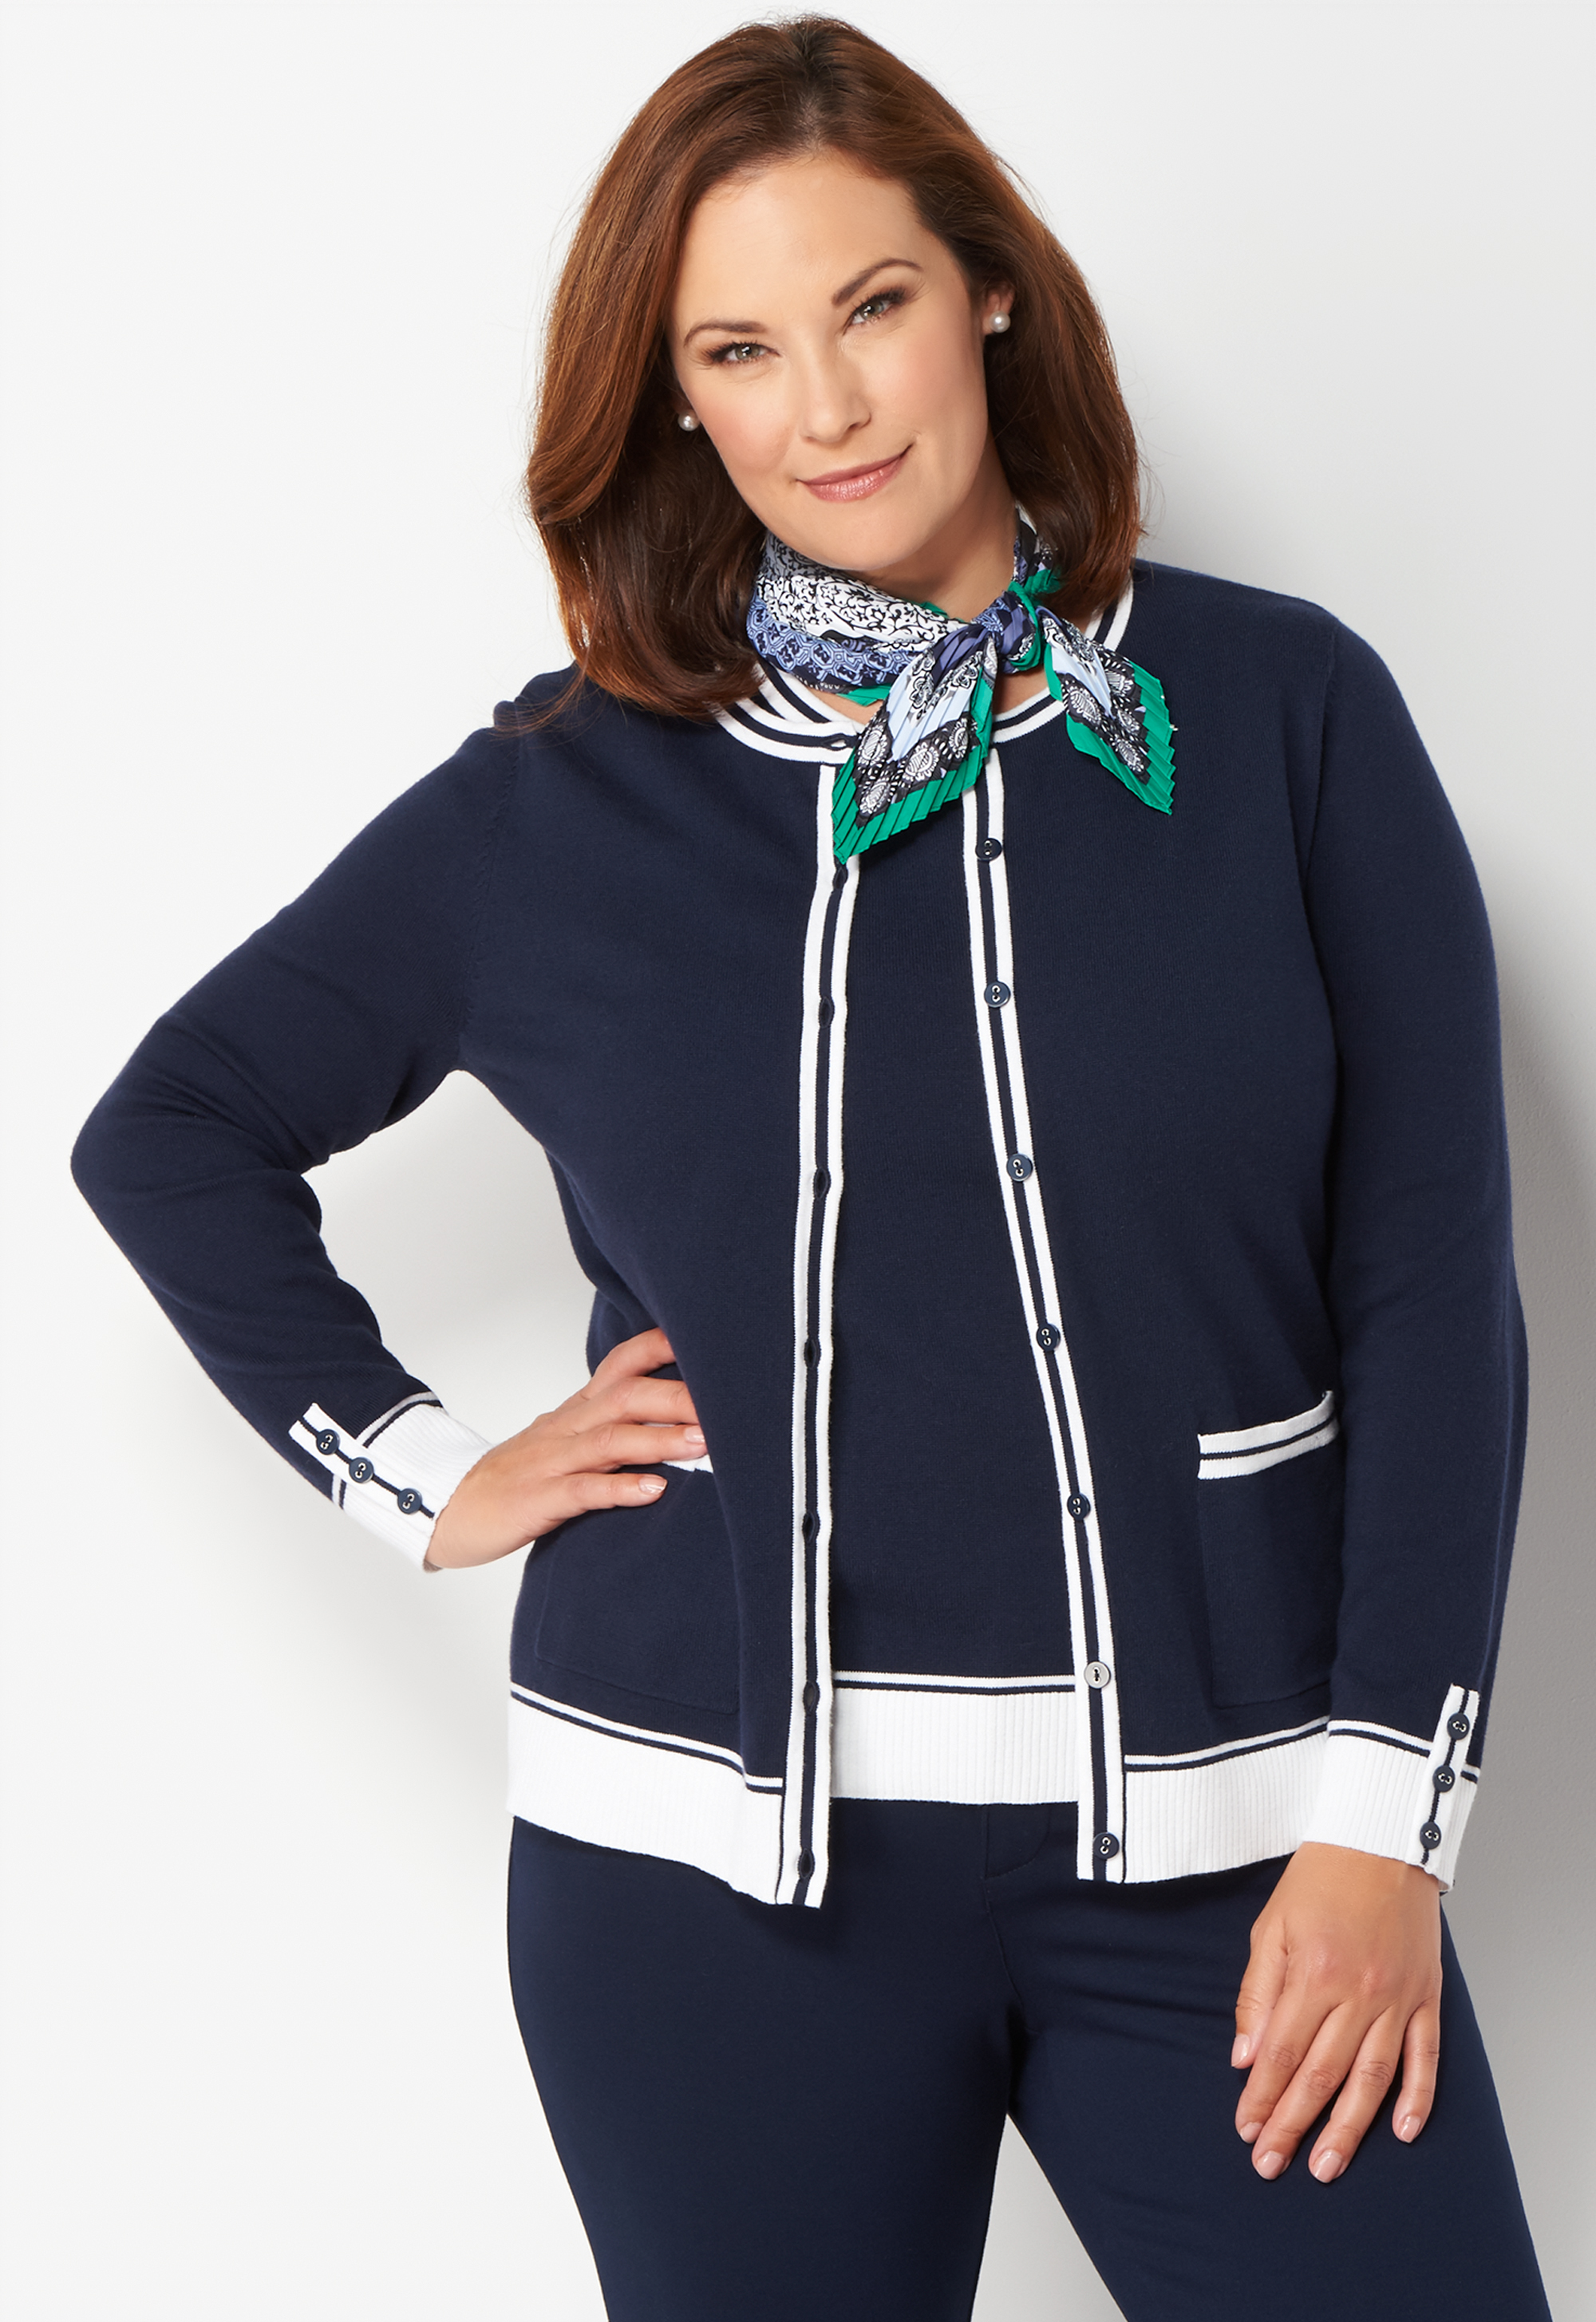 Vintage Sweaters: Cable Knit, Fair Isle Cardigans & Sweaters Plus Size Tipped Perfect Cardigan Plus Size Sweater - Blue - Christopher  Banks CJ Banks $49.95 AT vintagedancer.com